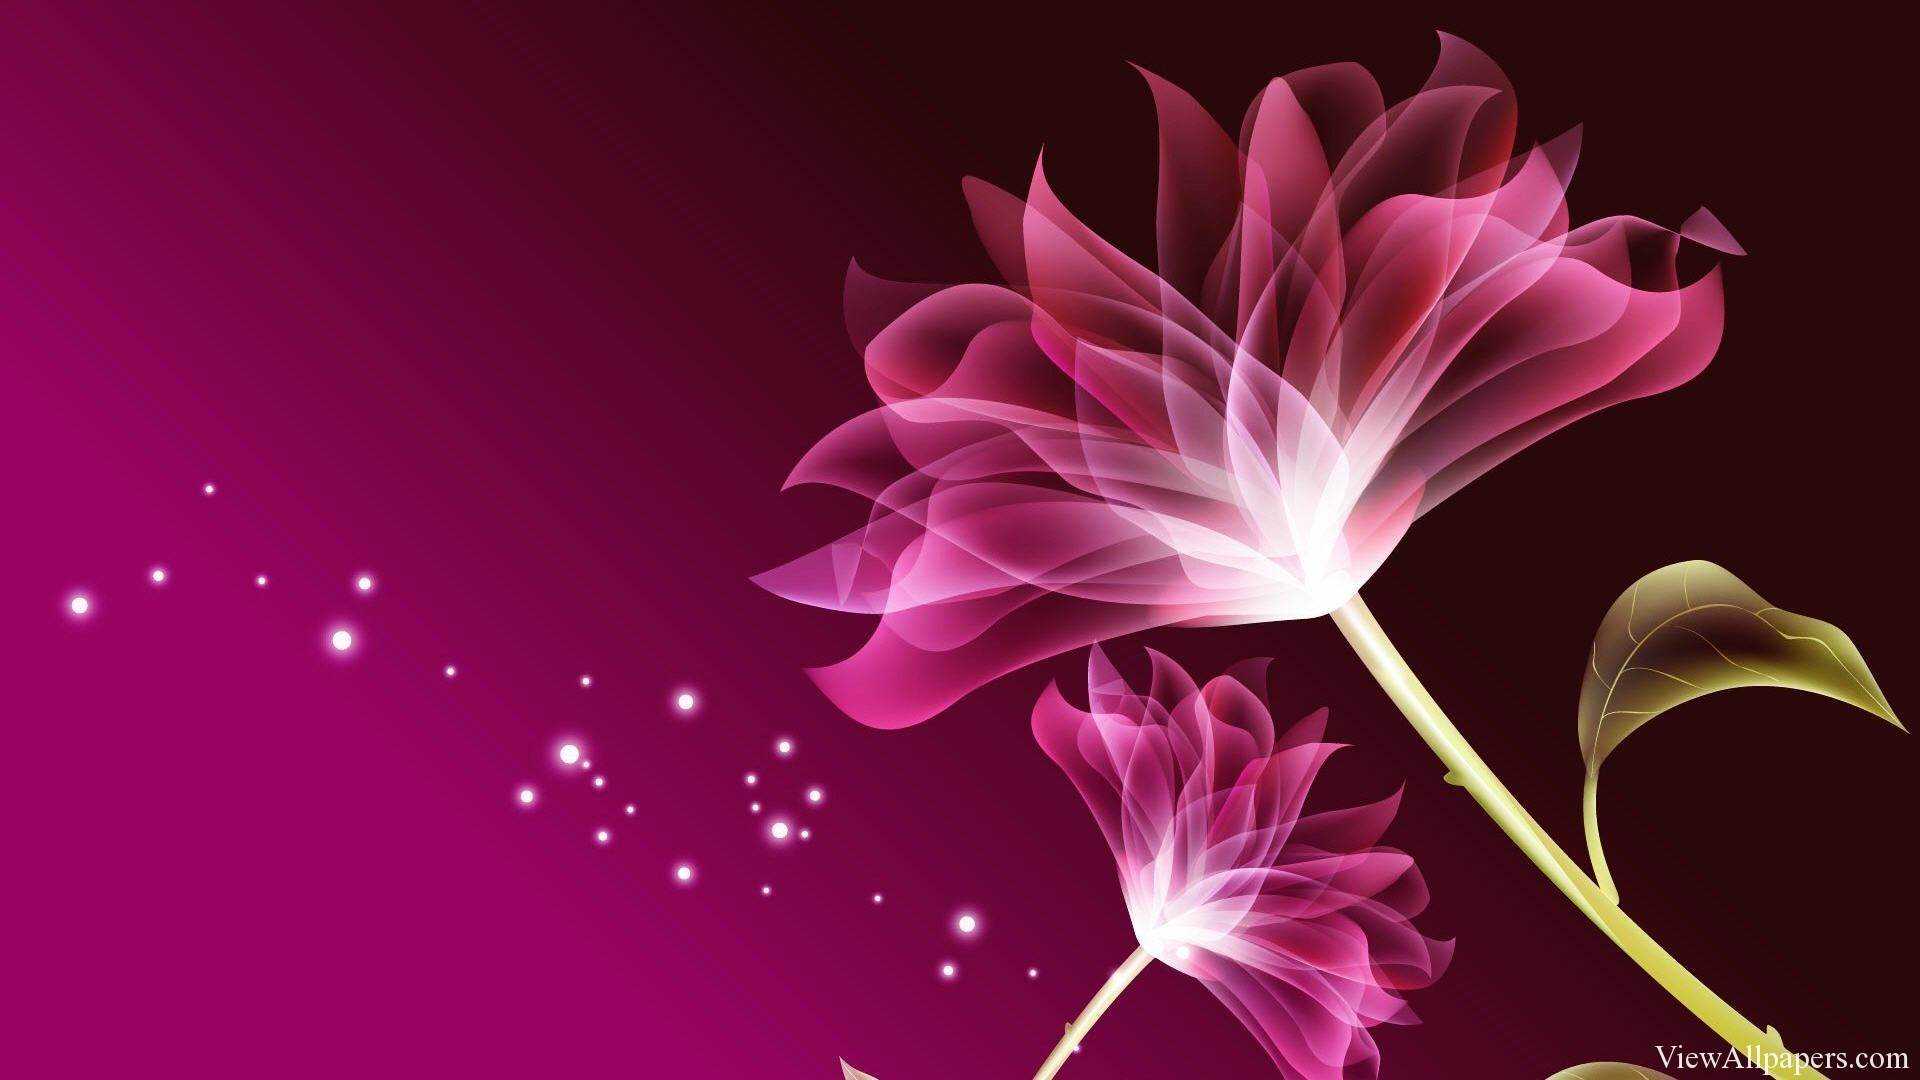 unknown Beautiful flowers - Flower Wallpapers Free download